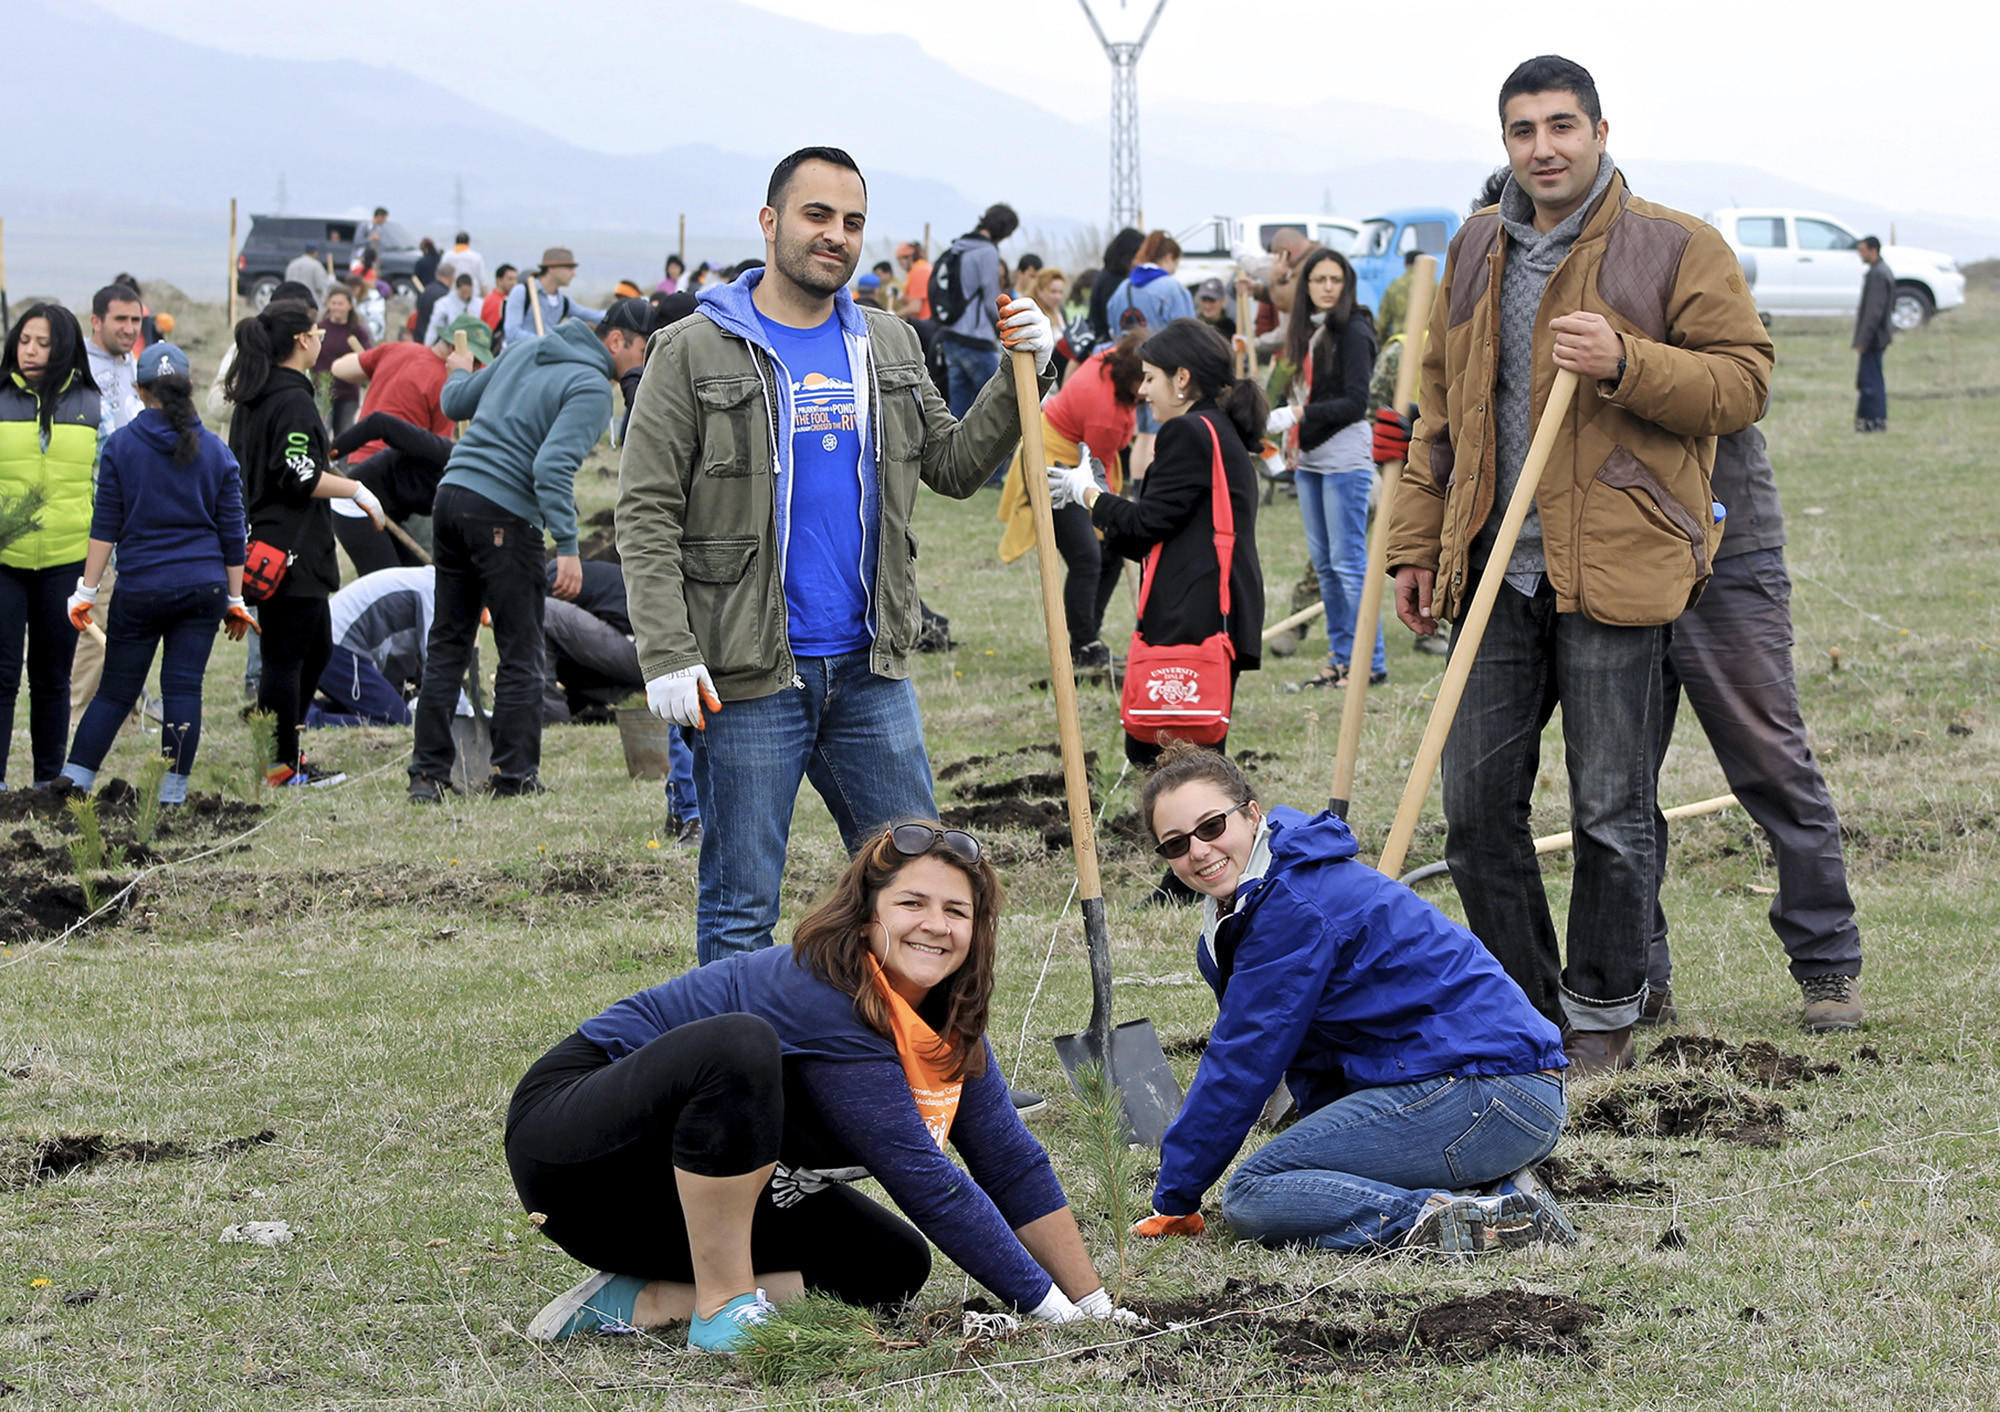 About 150 volunteers helped planted 20,000 trees in a memorial forest honoring Sos Thomassian and Allen Yekikian, a young couple whose unexpected death last year shook the Glendale Armenian community. The remaining of the planned 50,000 trees will be planted in the fall. Some of the volunteers included Vach Thomassian (top left), Vrej Haroutounian (top right), Ali Hamlin (bottom left) and Nina Roma Agvanian (bottom right).